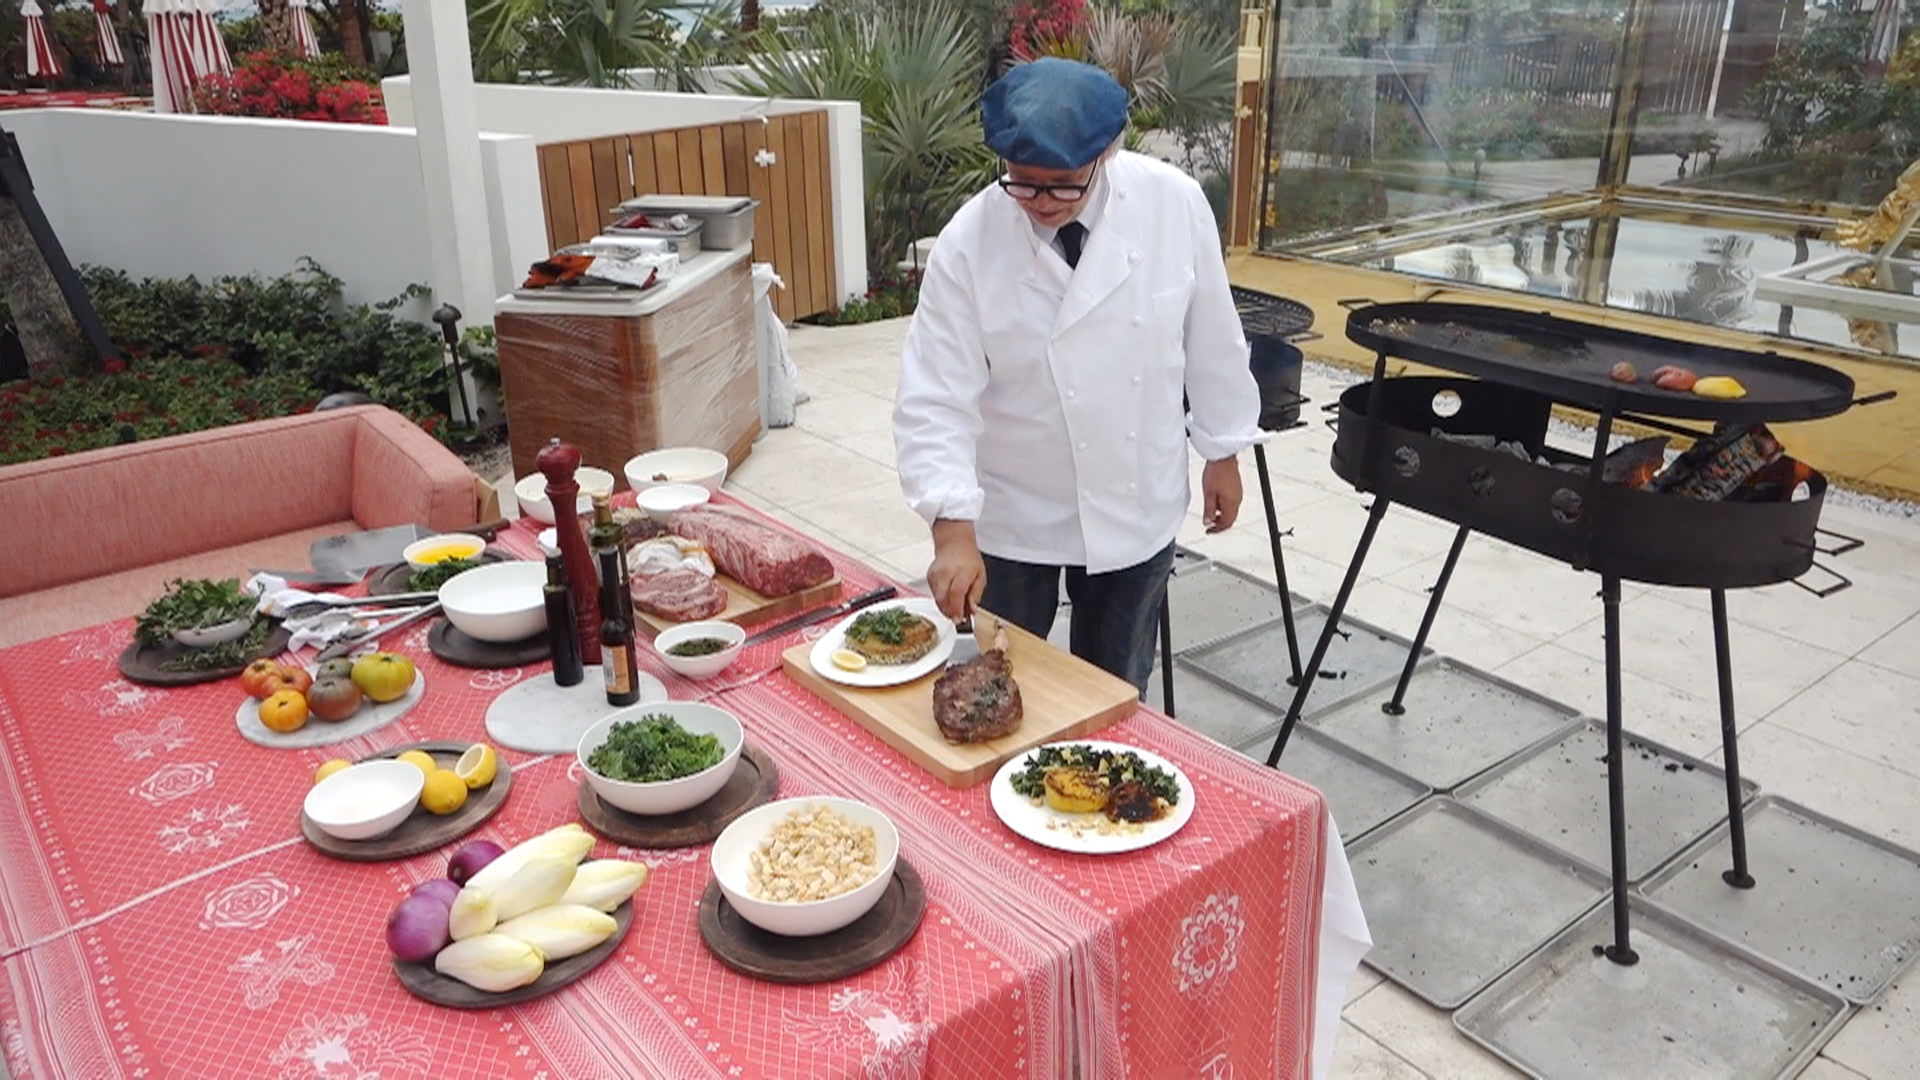 Acclaimed South American Chef Brings Fire and Flavor to U.S.